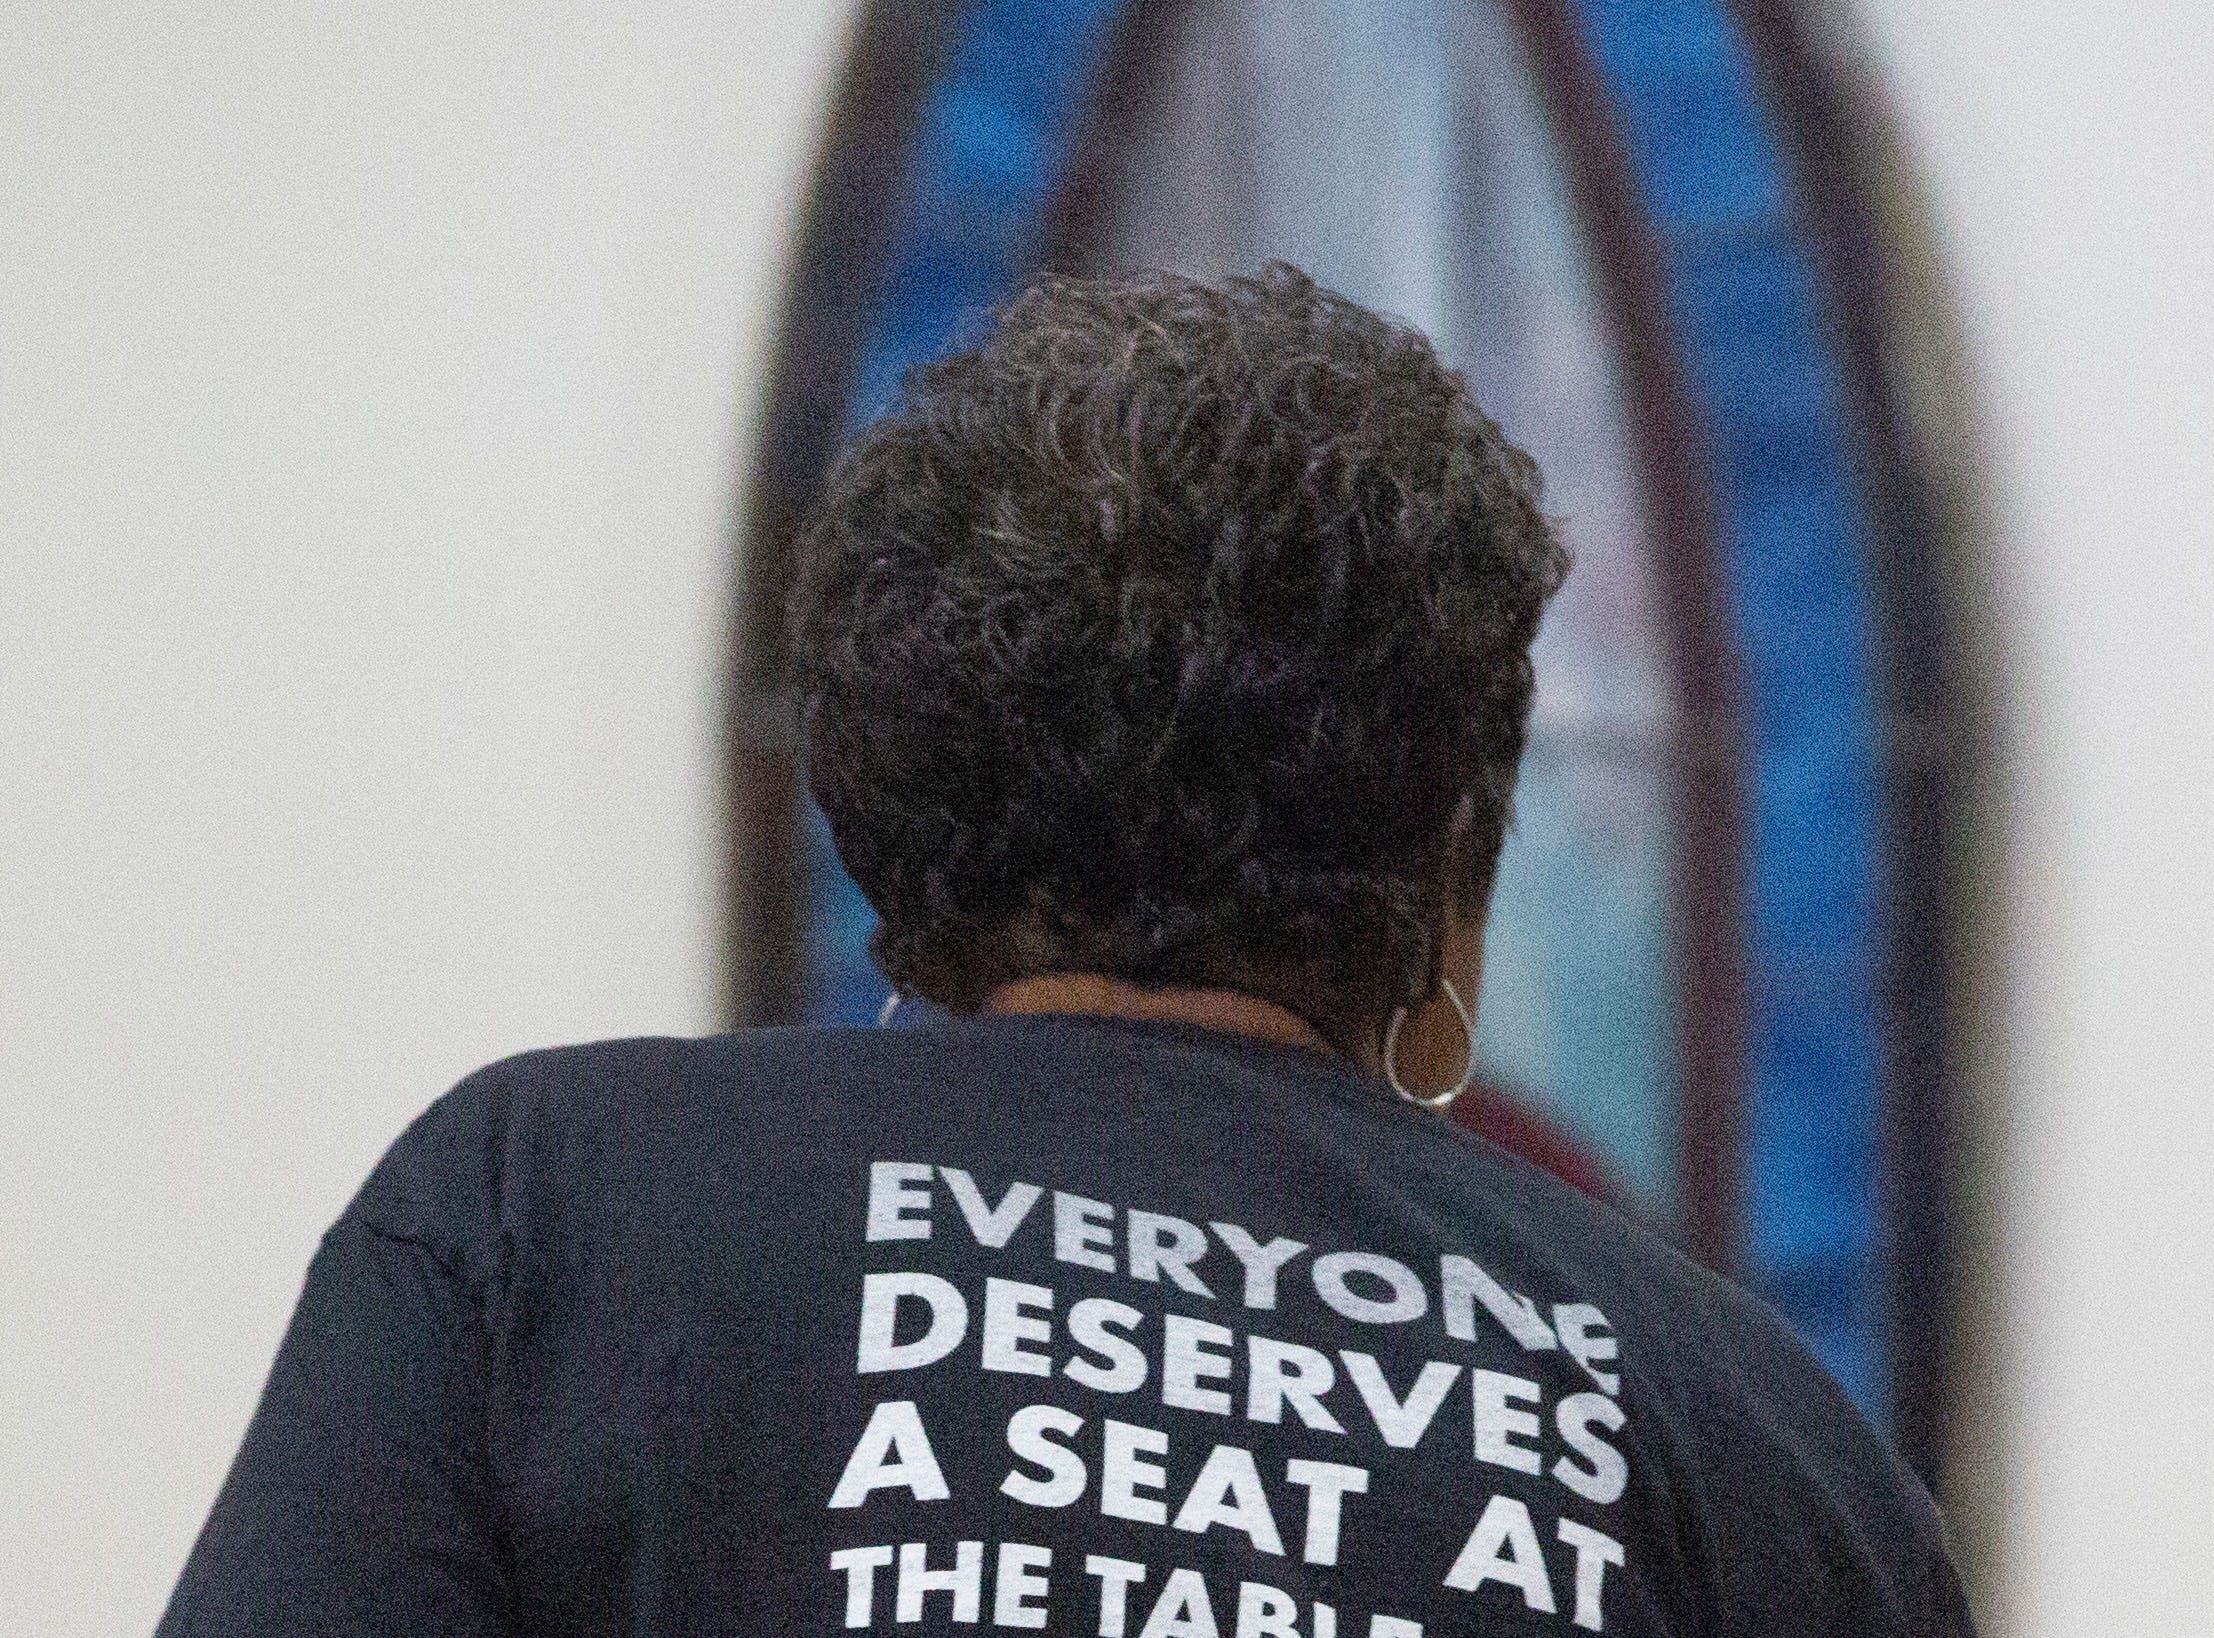 Montgomery celebrated the inaugural Rosa Parks Day with events at her former church St. Paul AME, the Rosa Parks Memorial and Alabama State University.